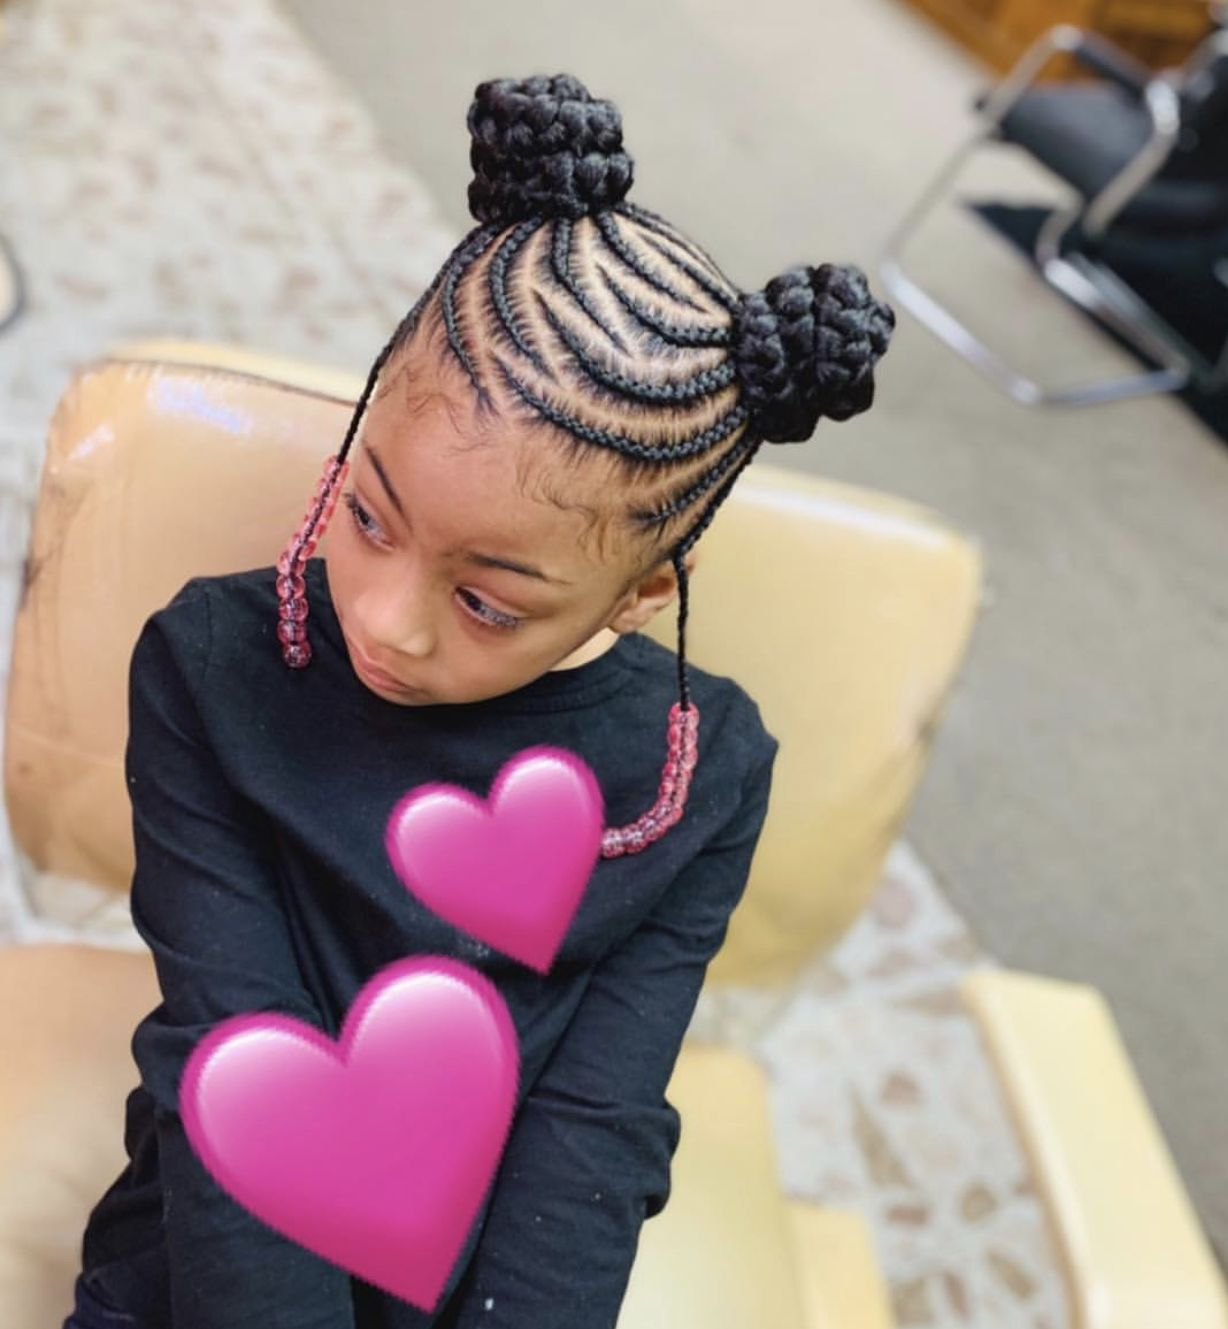 Hairstyles Ideas For Little Black Girls hairstyleforblackwomen.net 1080